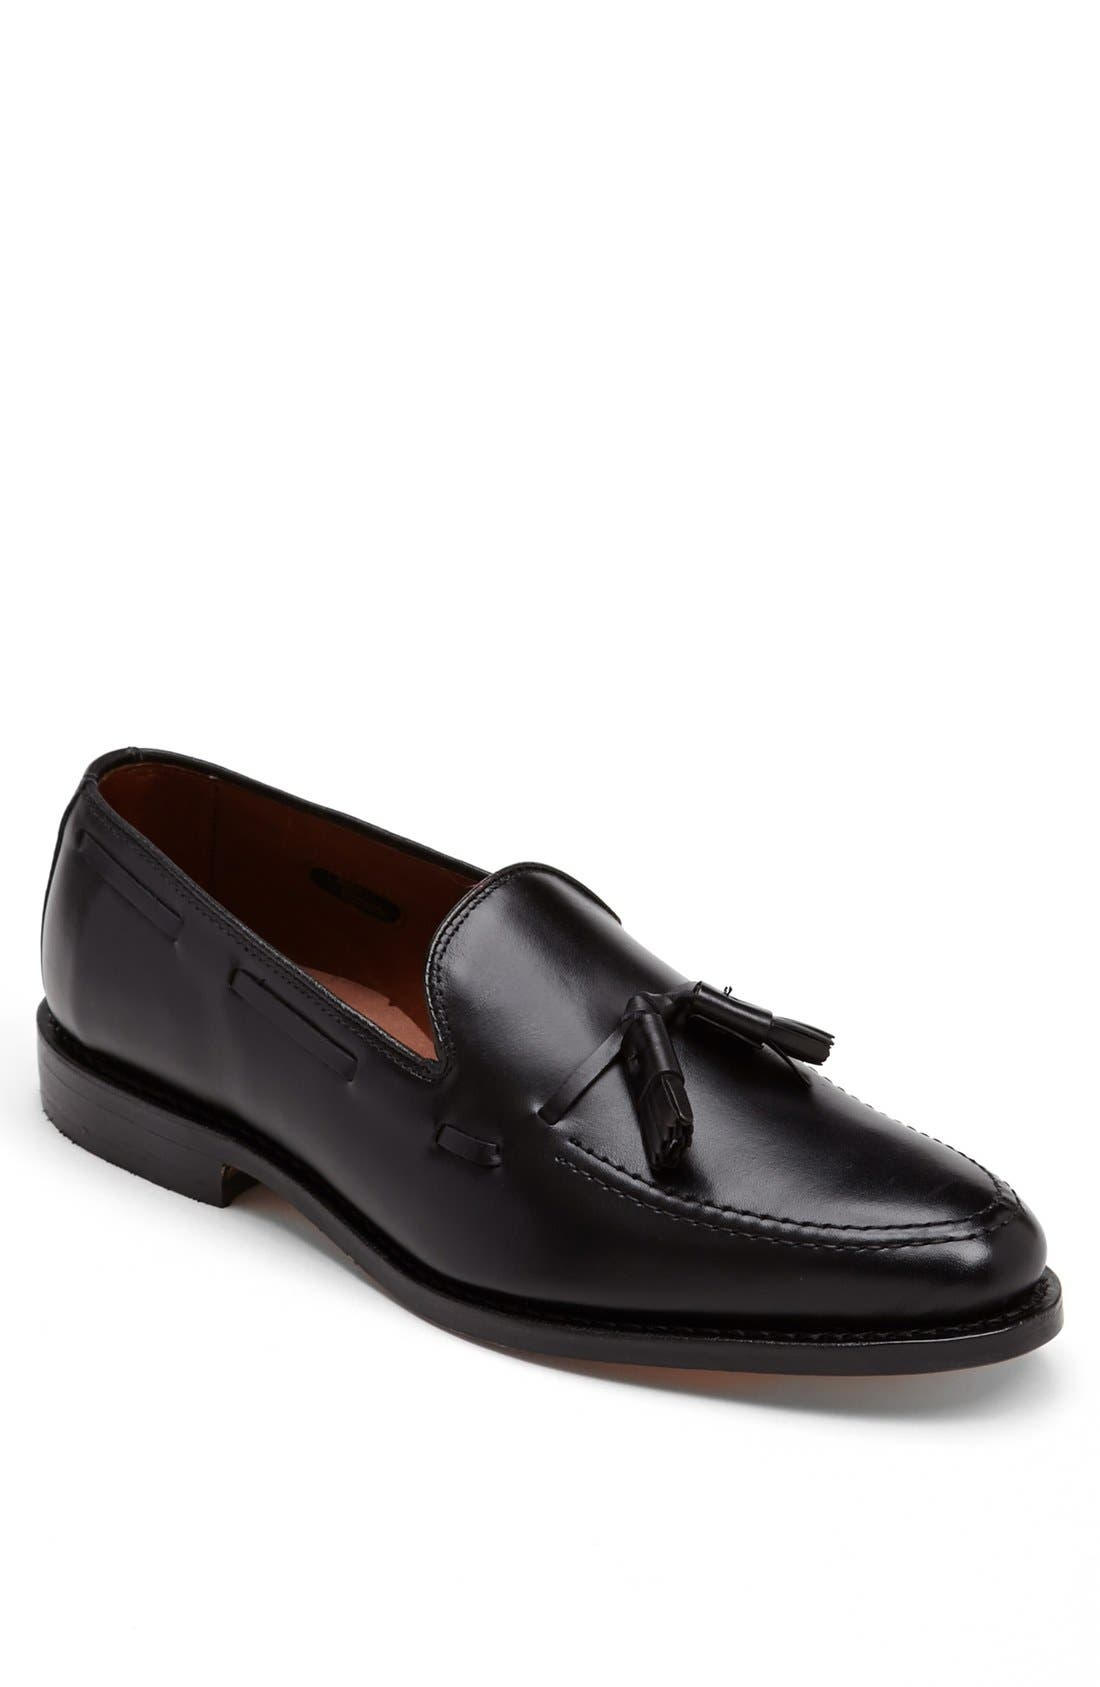 Allen Edmonds 'Grayson' Tassel Loafer (Men)